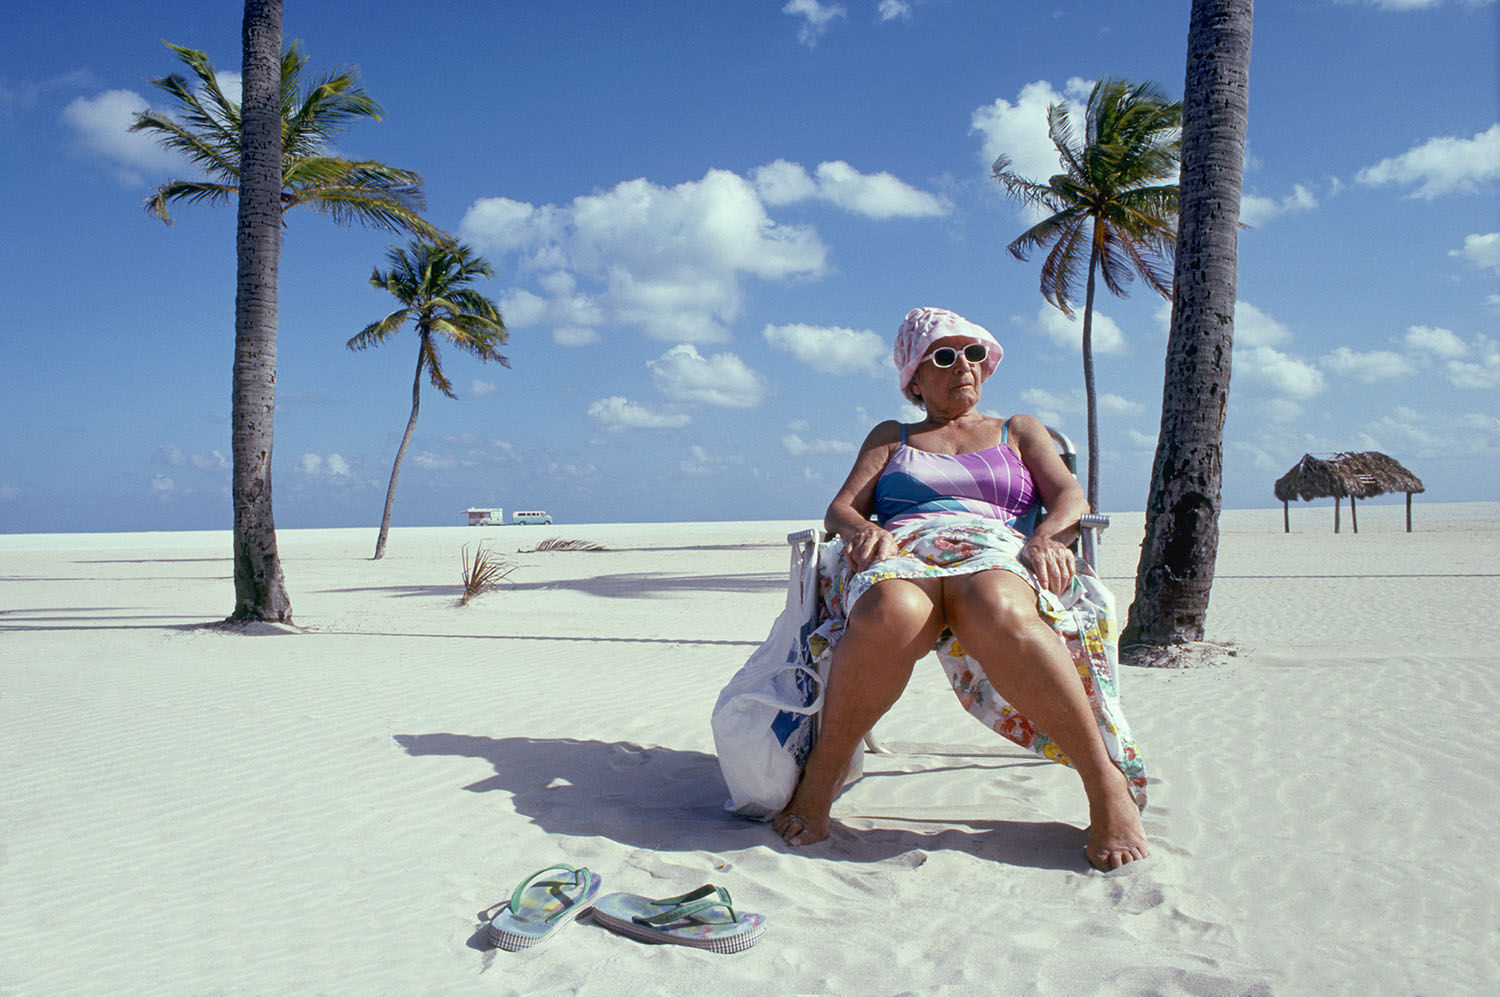 590_1old_lady_on_miami_beachb.jpg